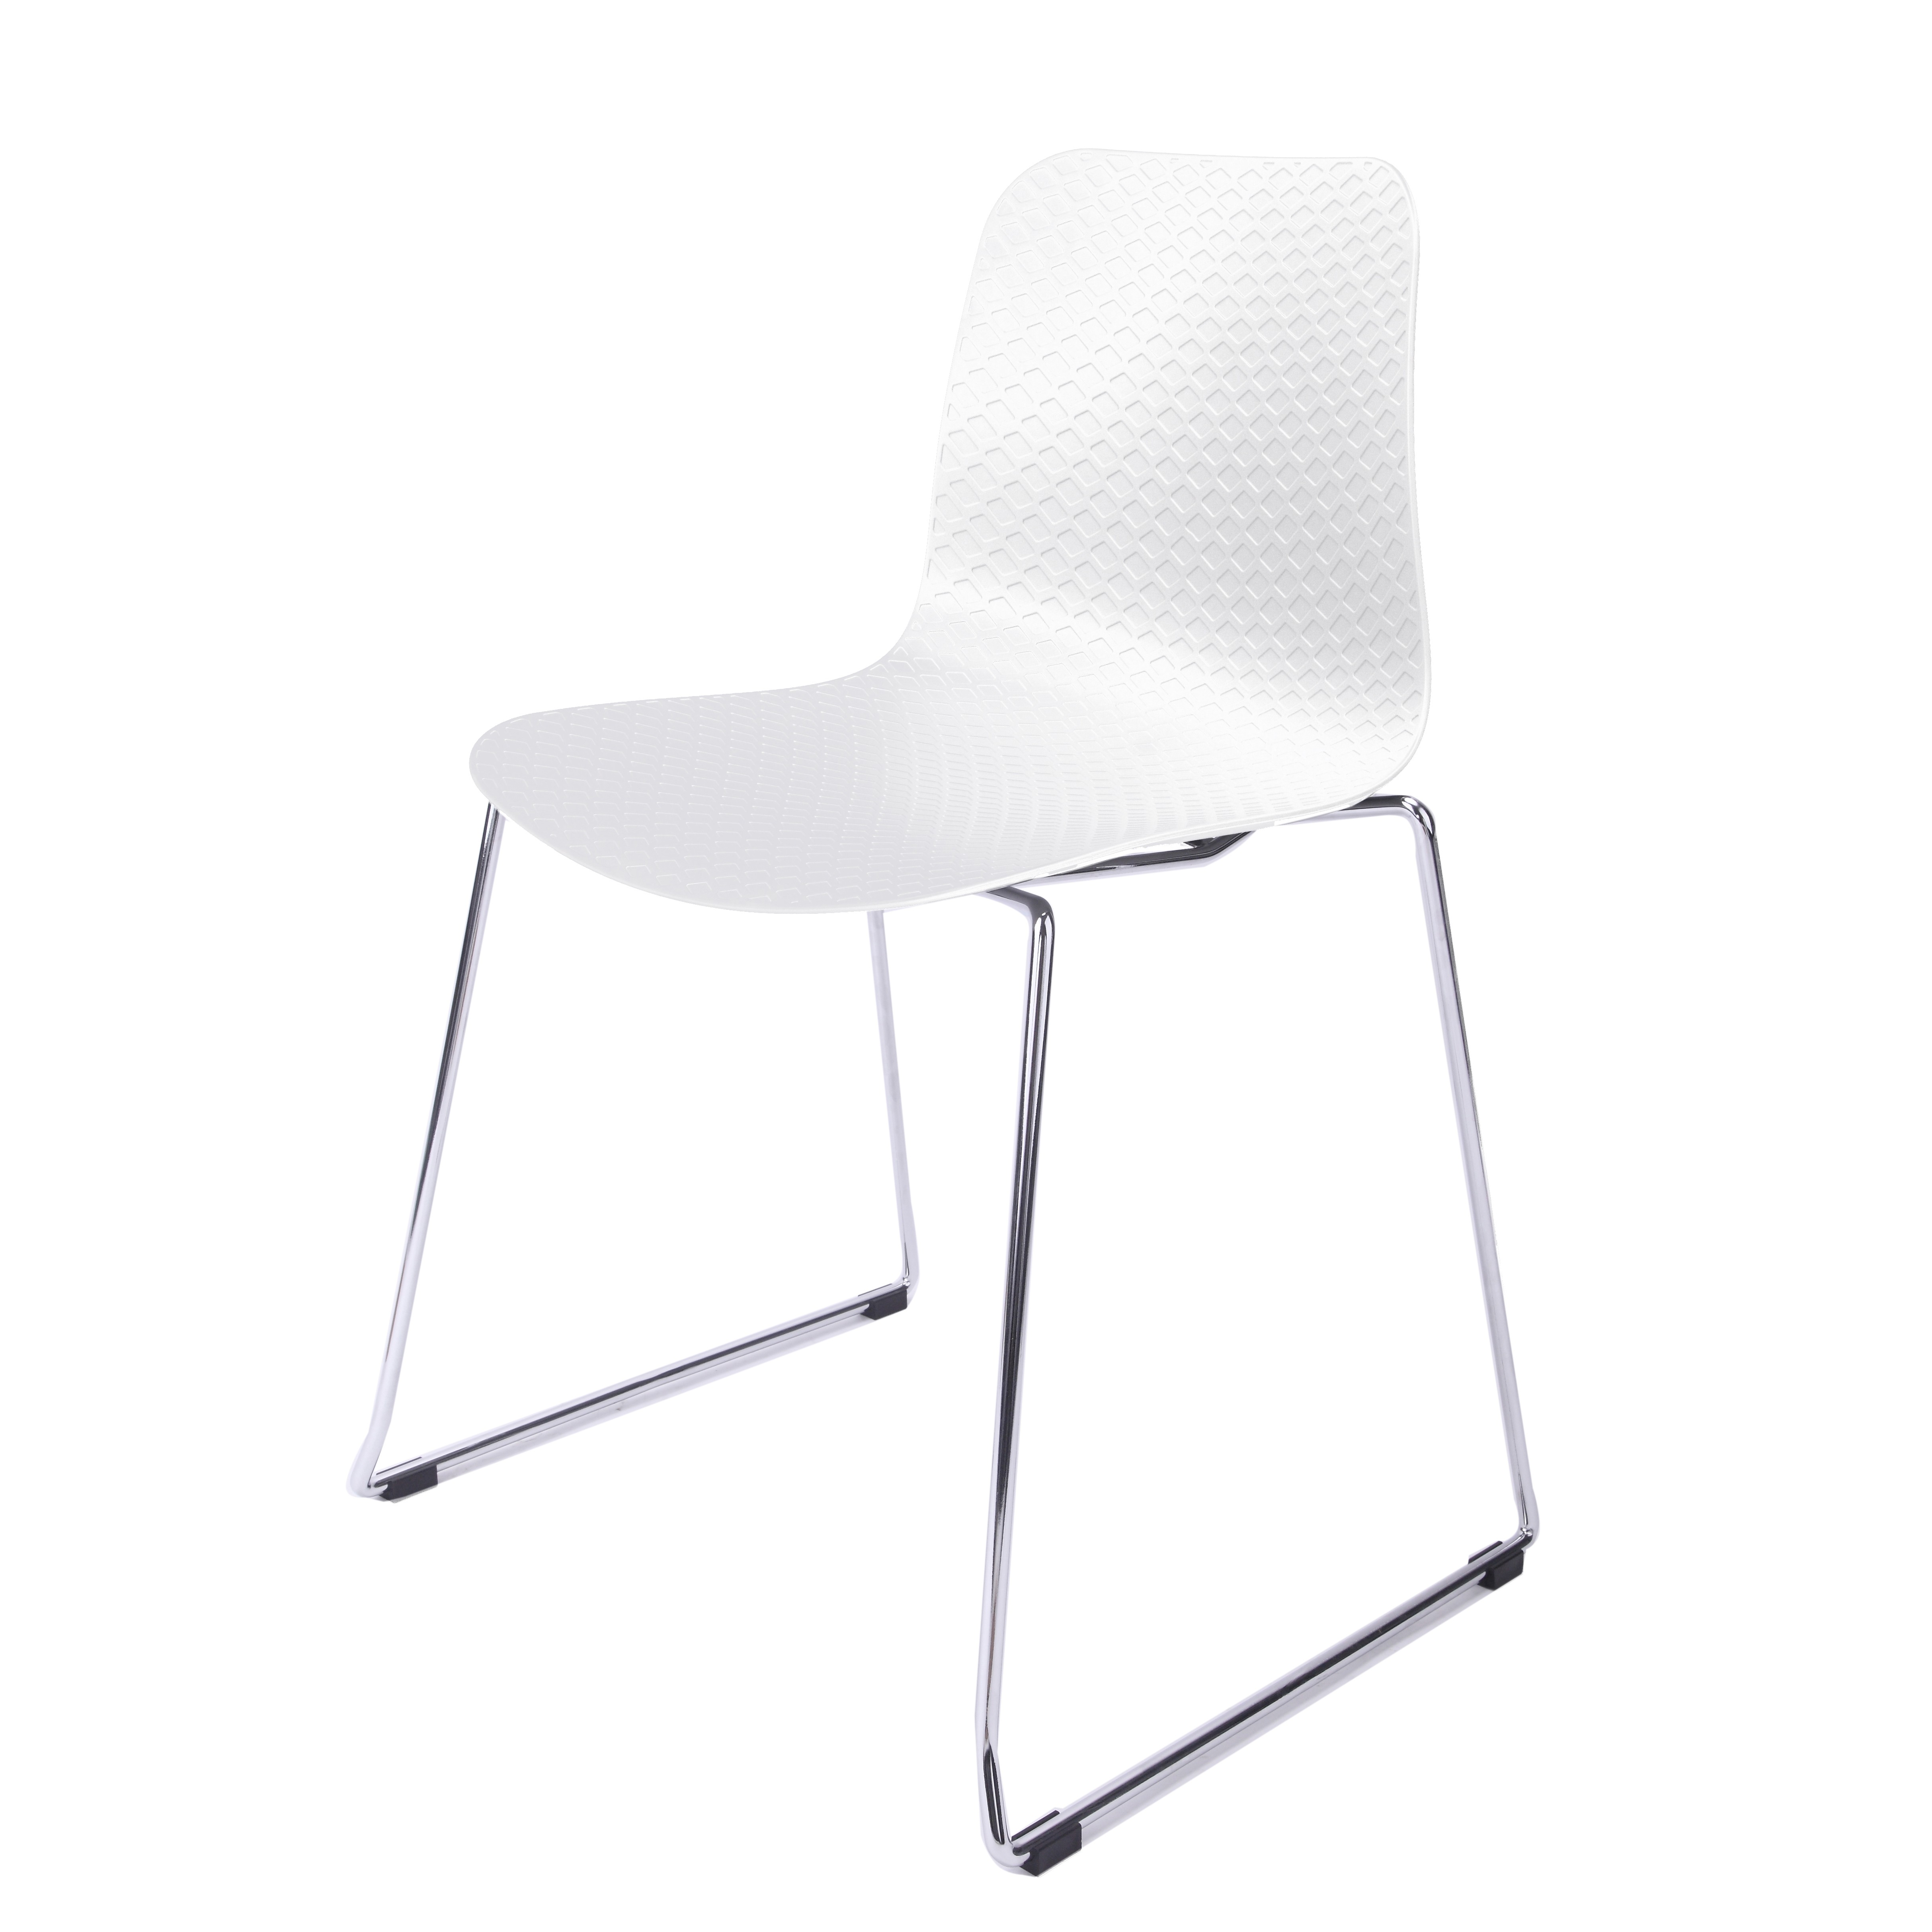 Series White Dining Shell Side Chair Molded Plastic Steel Metal Legs